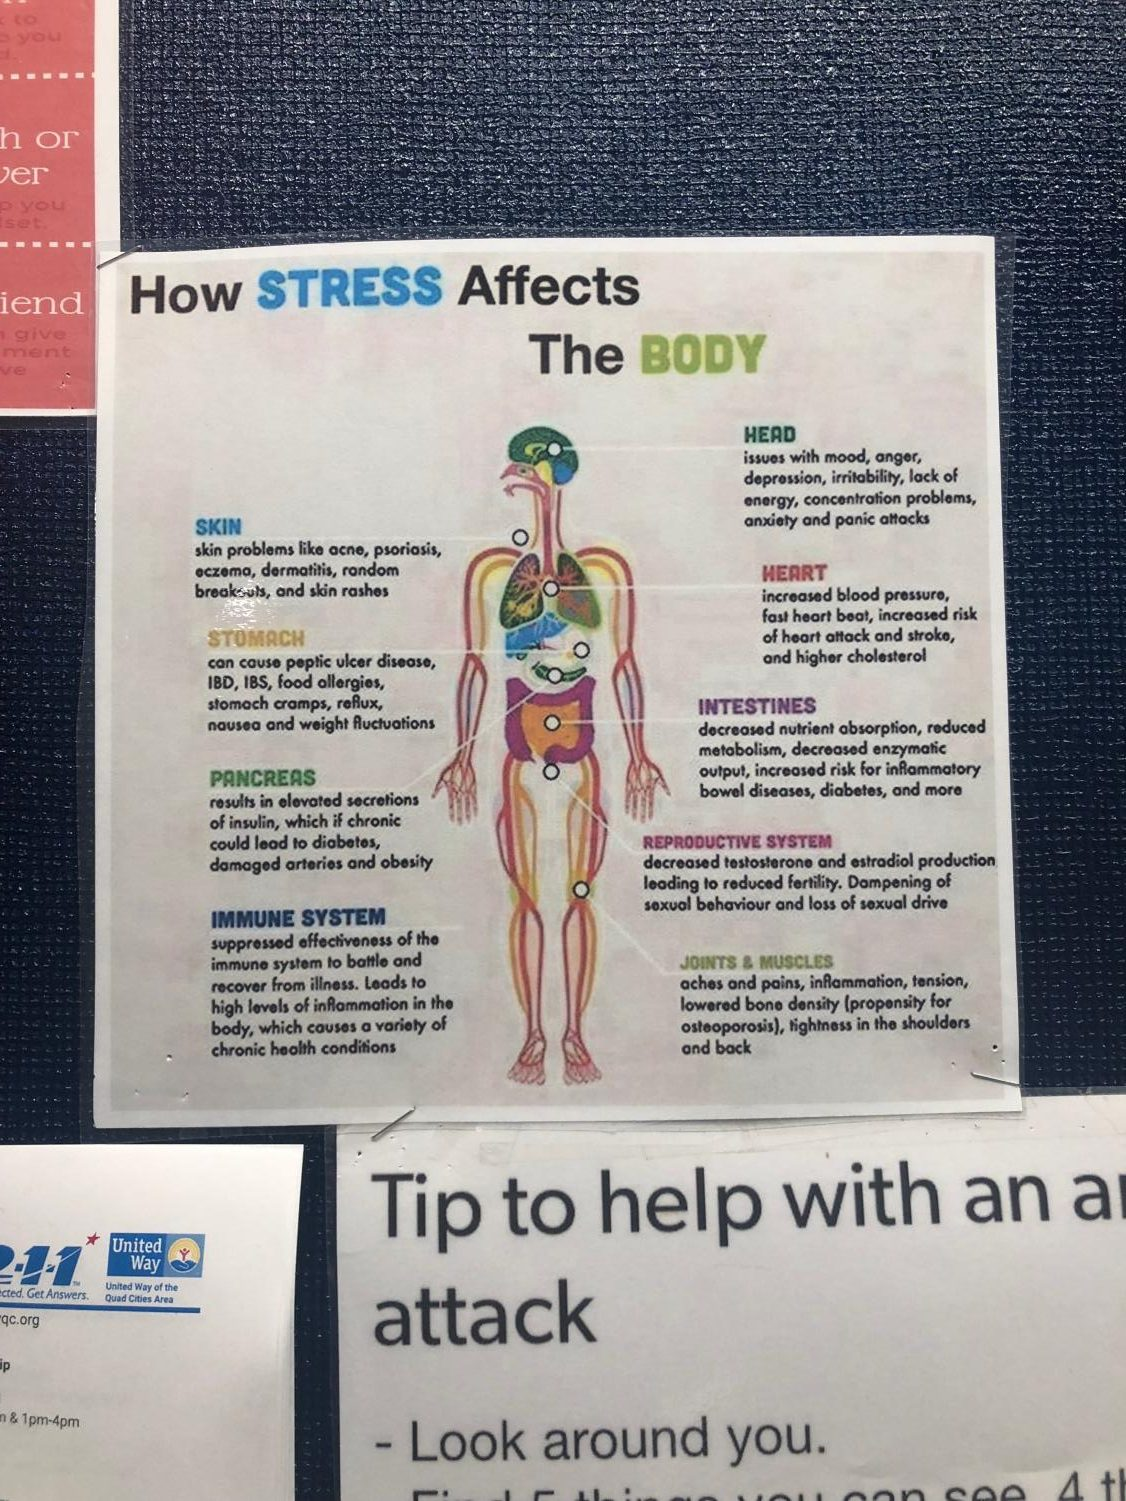 this poster shows how stress affects the body.